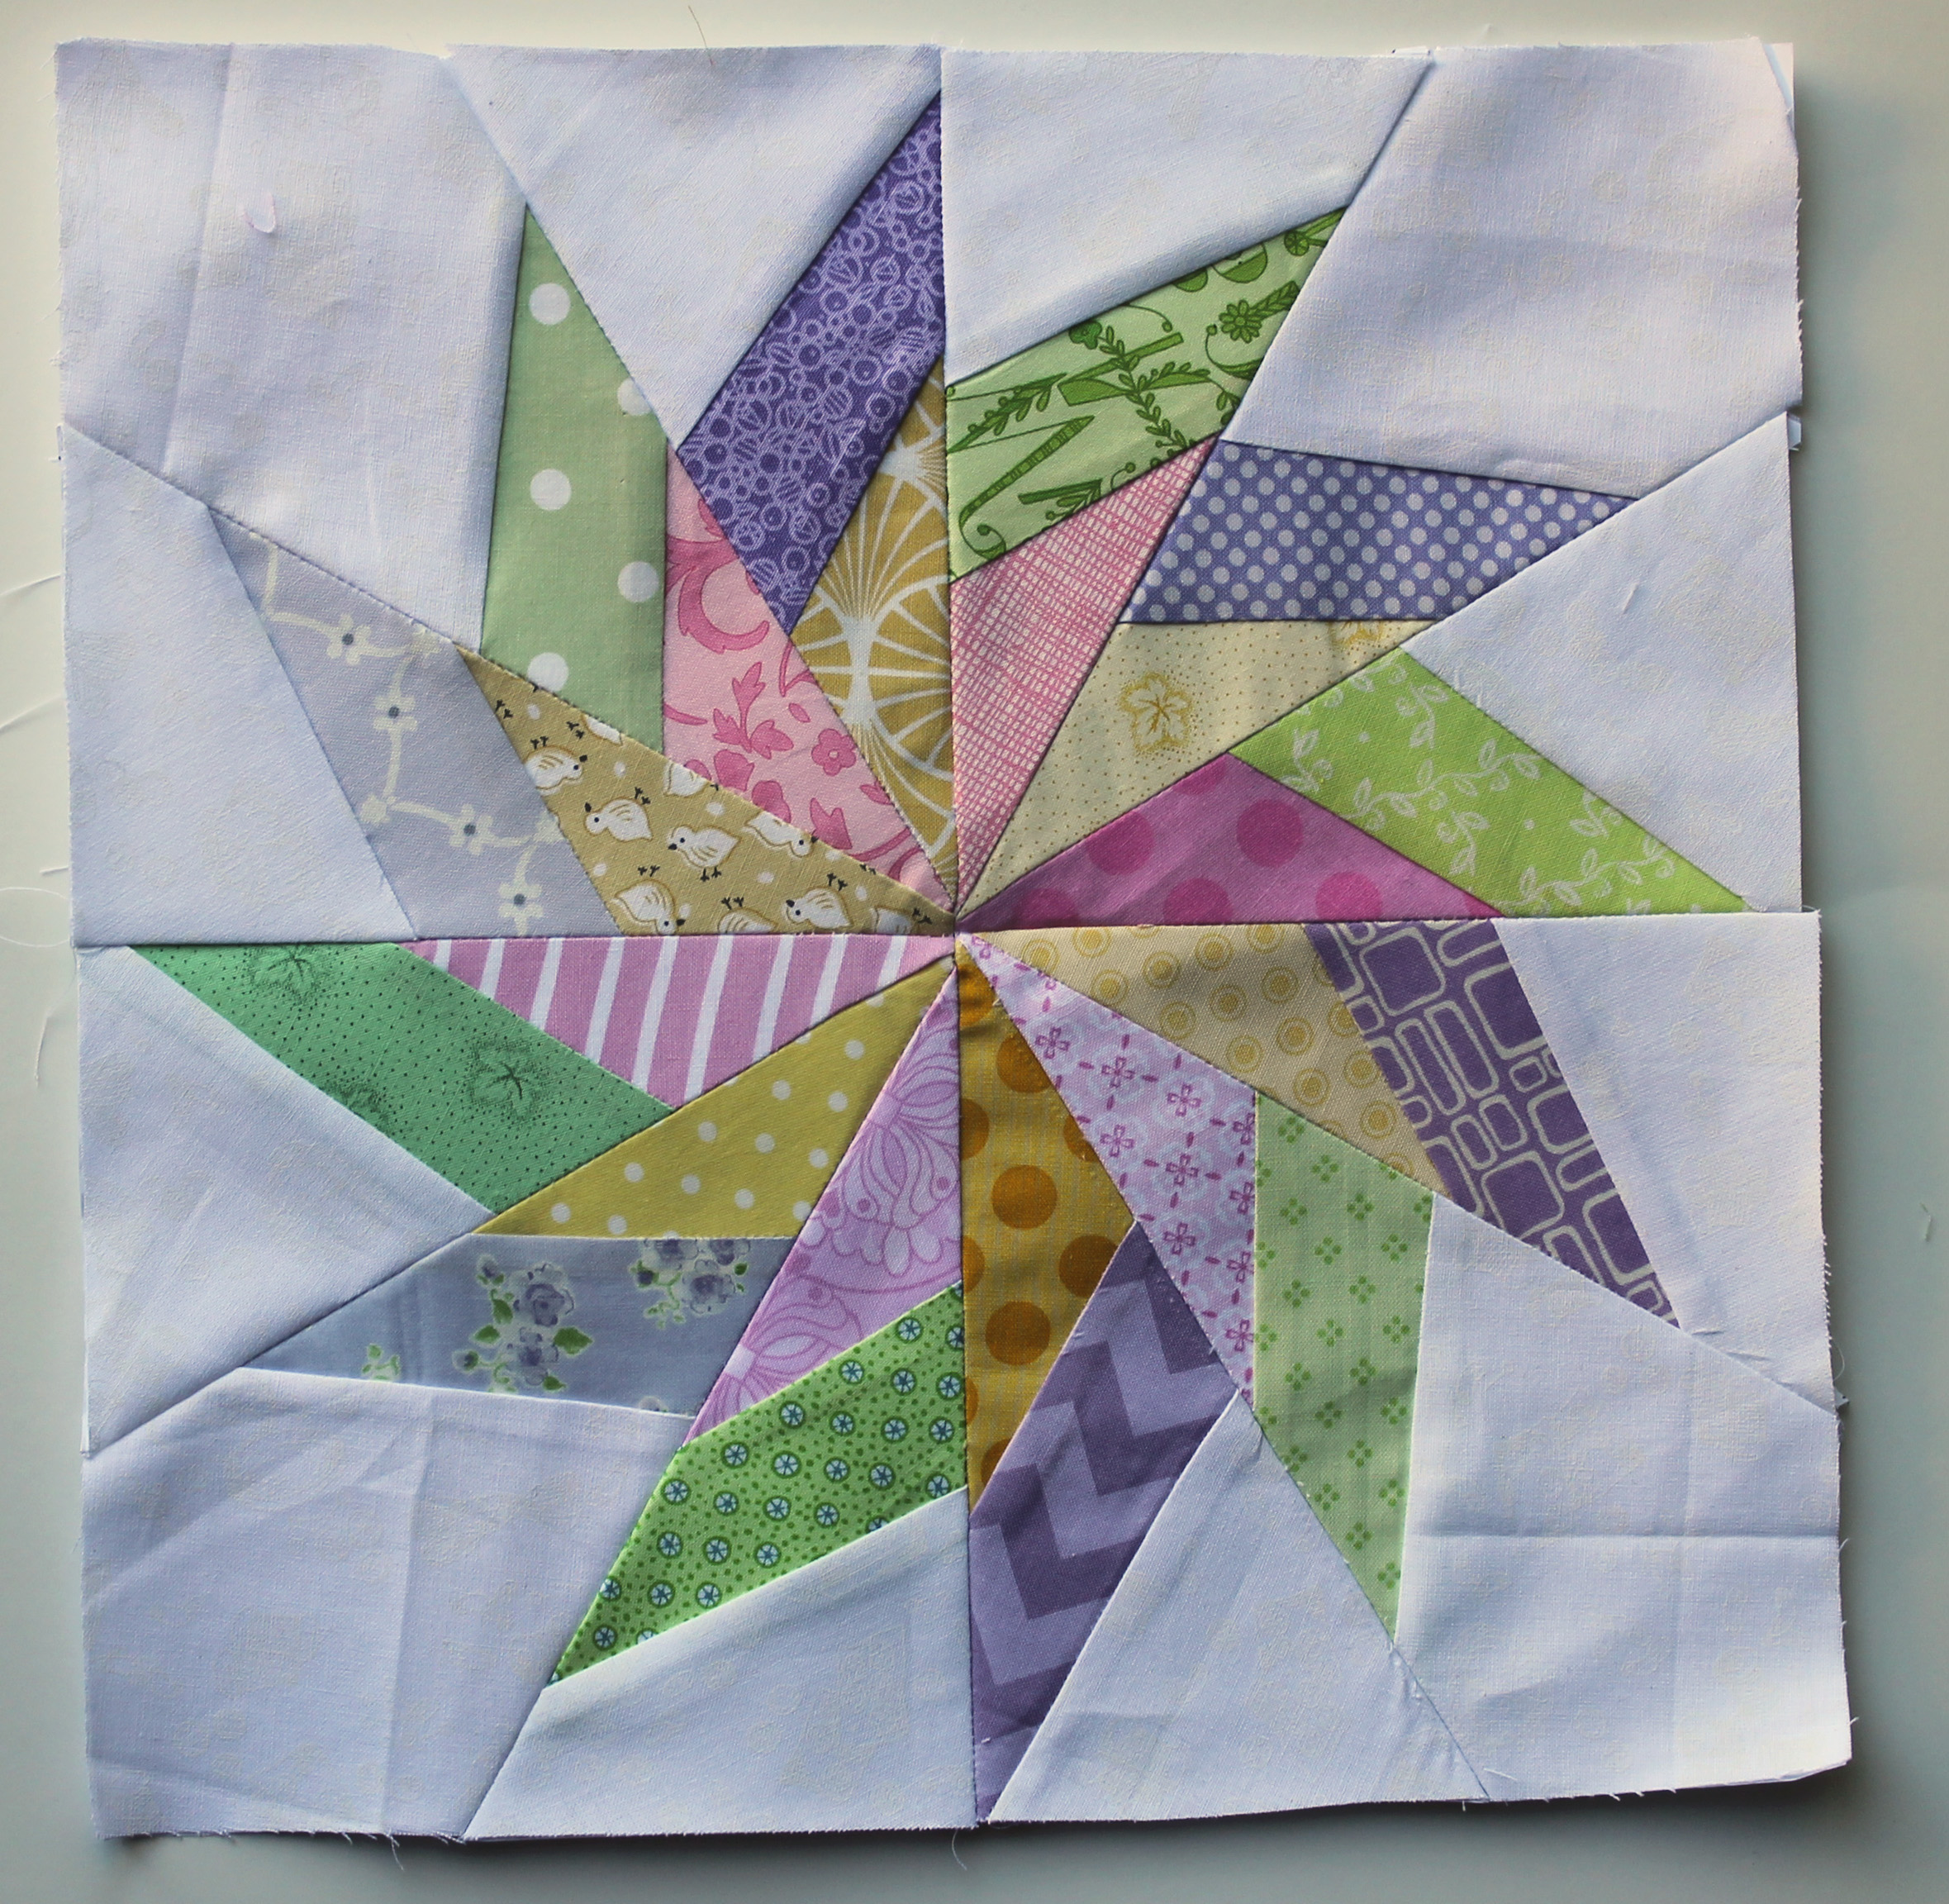 Paper Piece Quilting Instructions: Paper Piecing Monday Tips